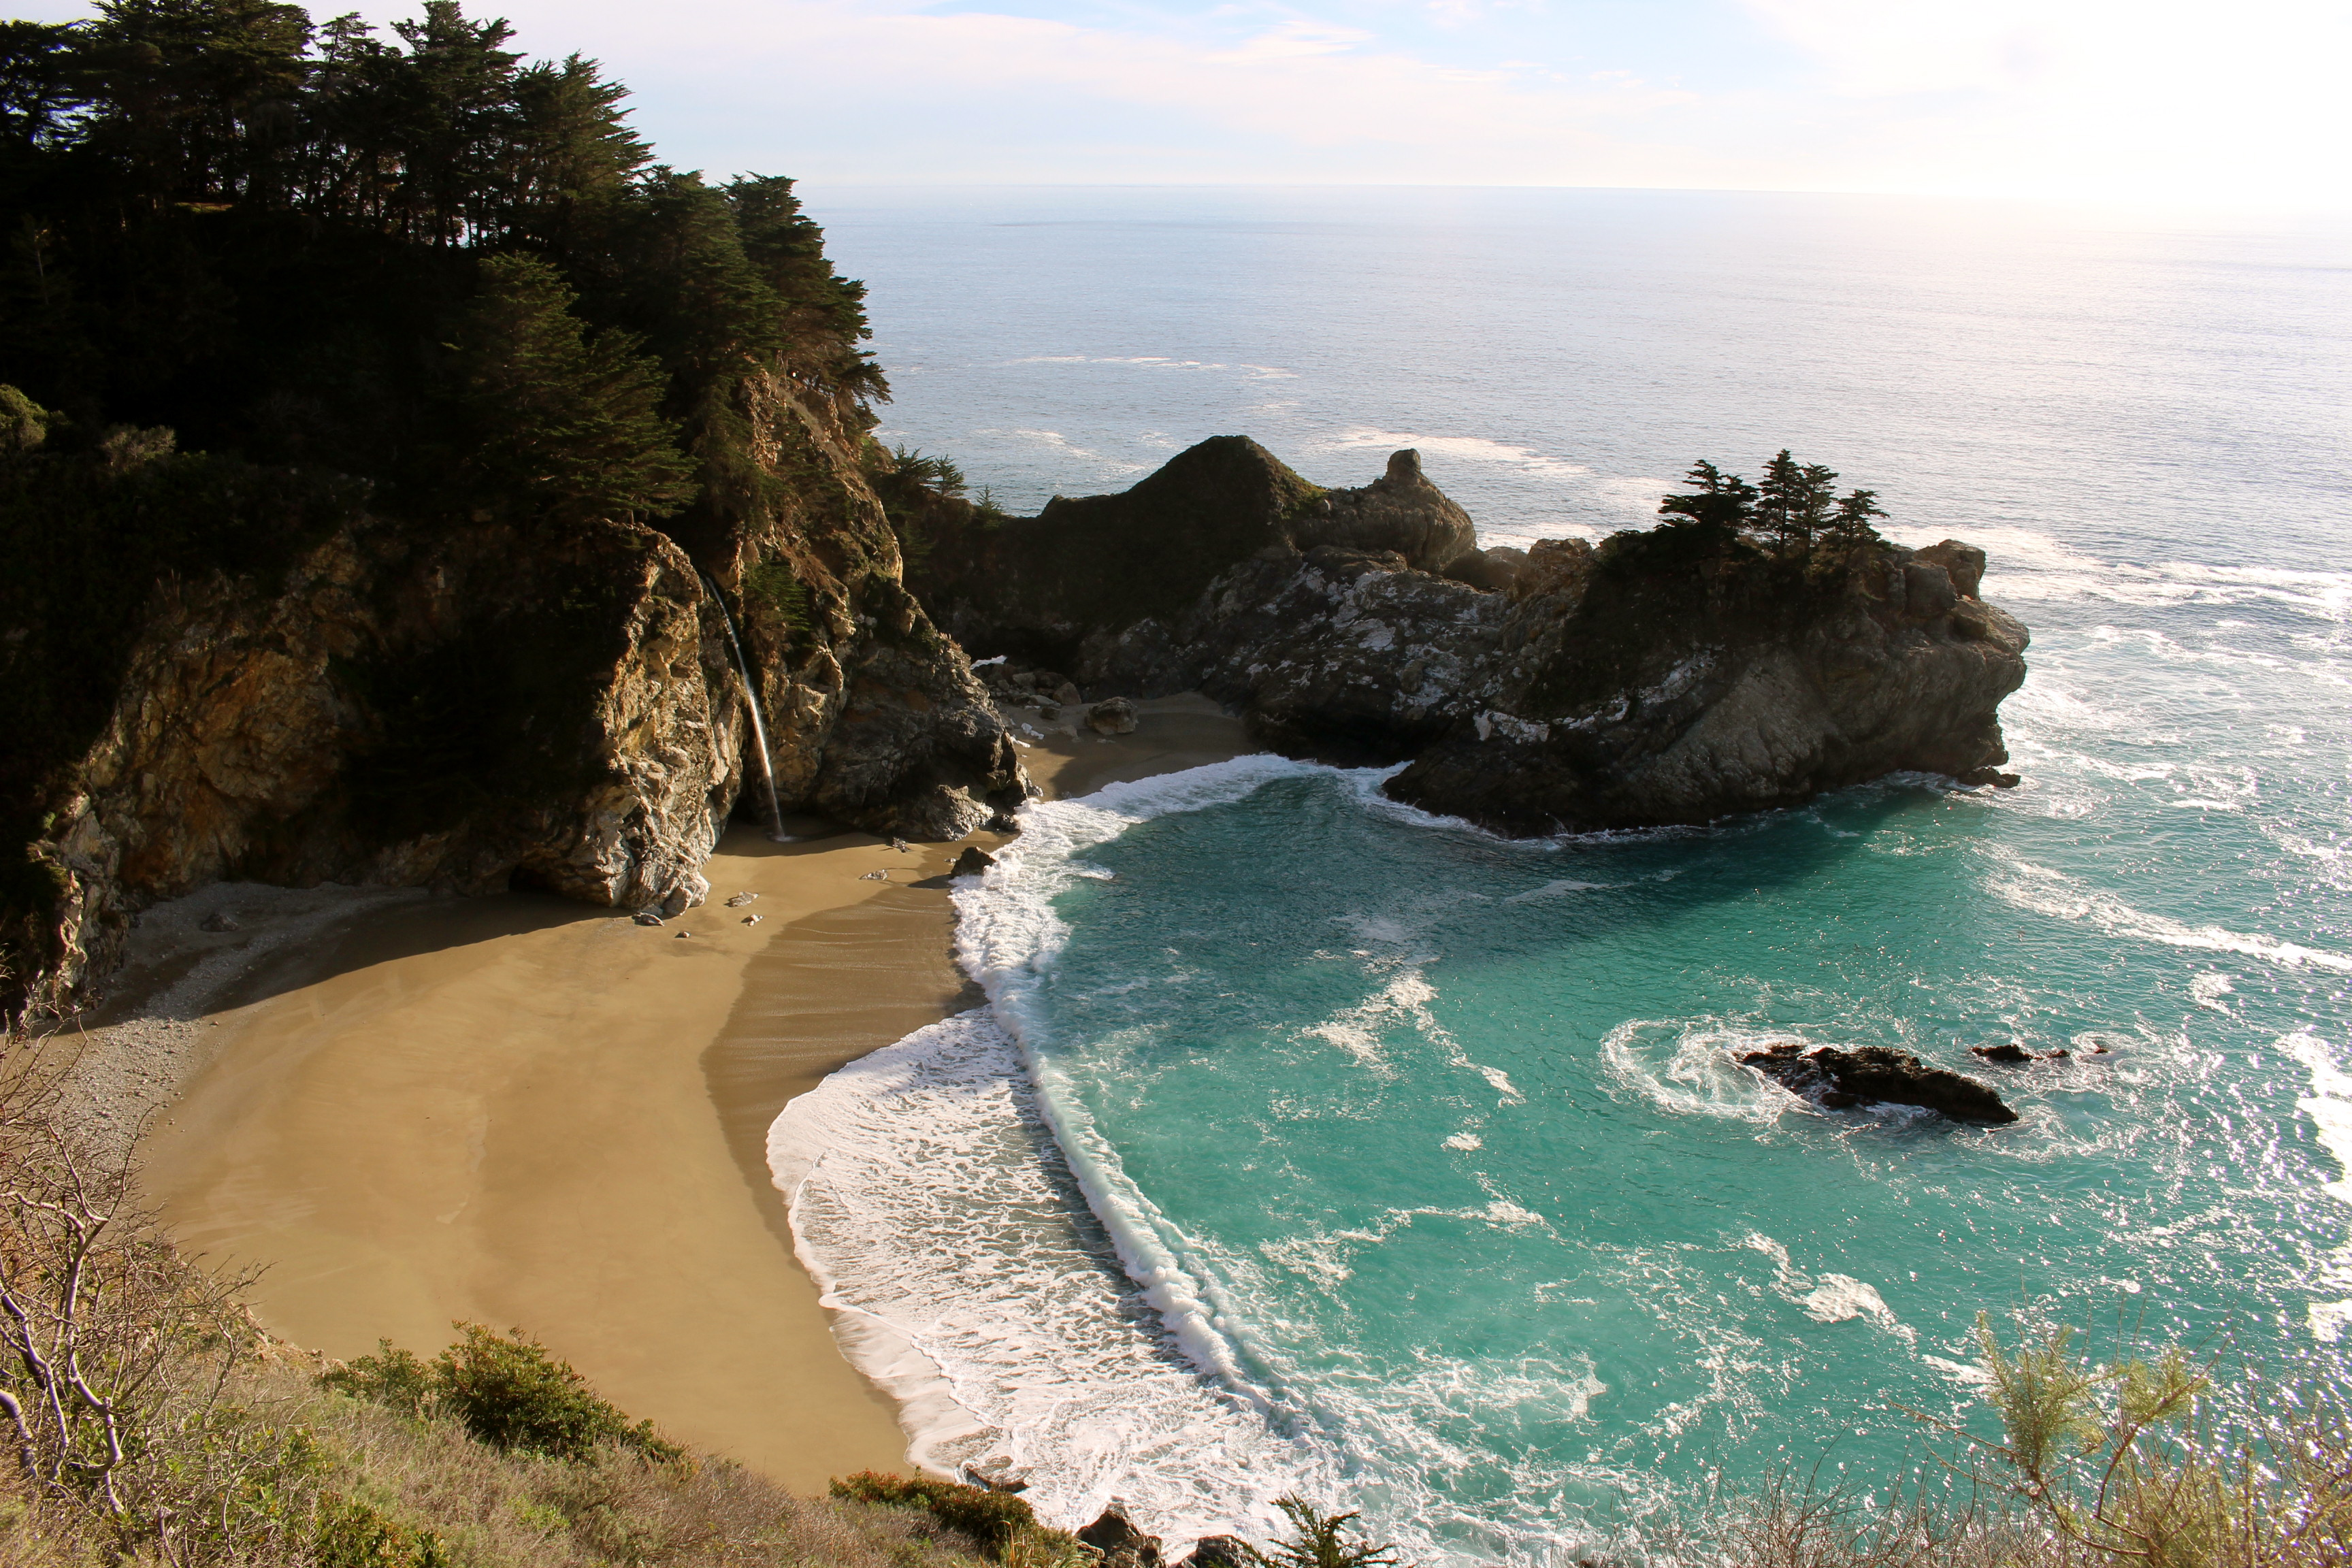 Julia Pfeiffer Burns State Park Beach - McWay Falls